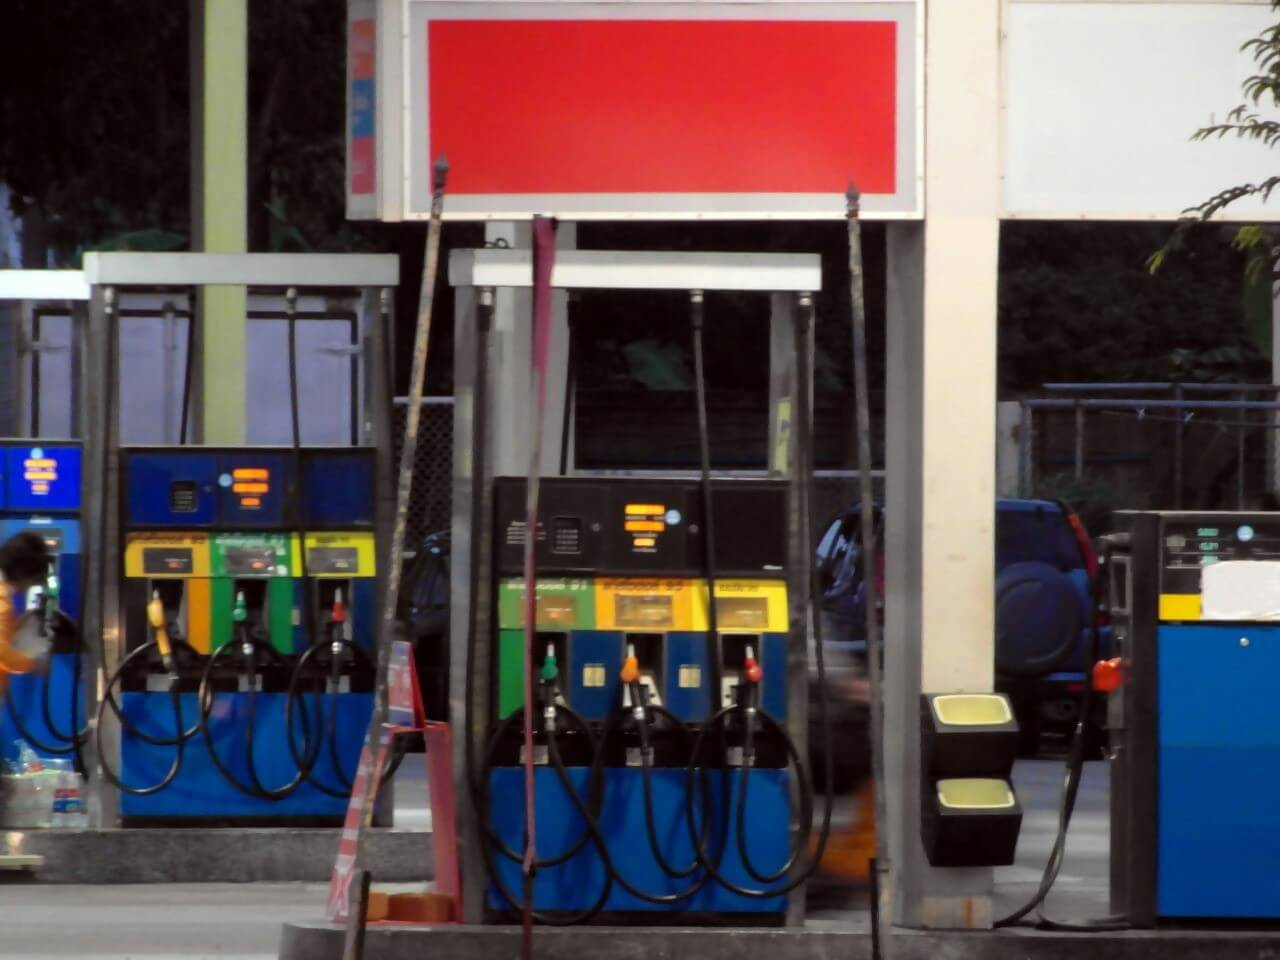 A view of petrol pumps in a fuel station